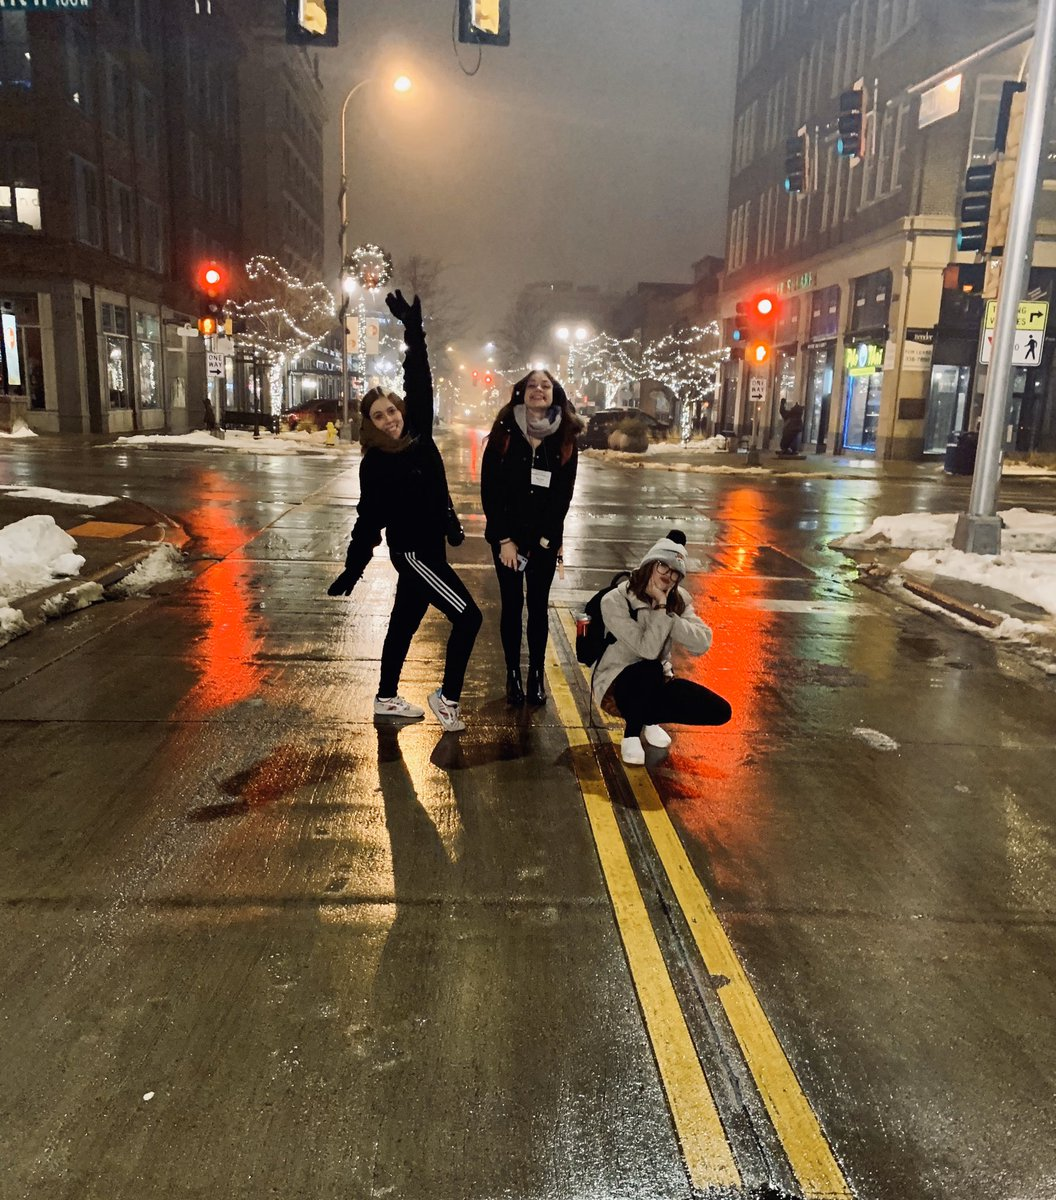 we really be out here in the middle of the street in Sioux Falls because there are NO RULES